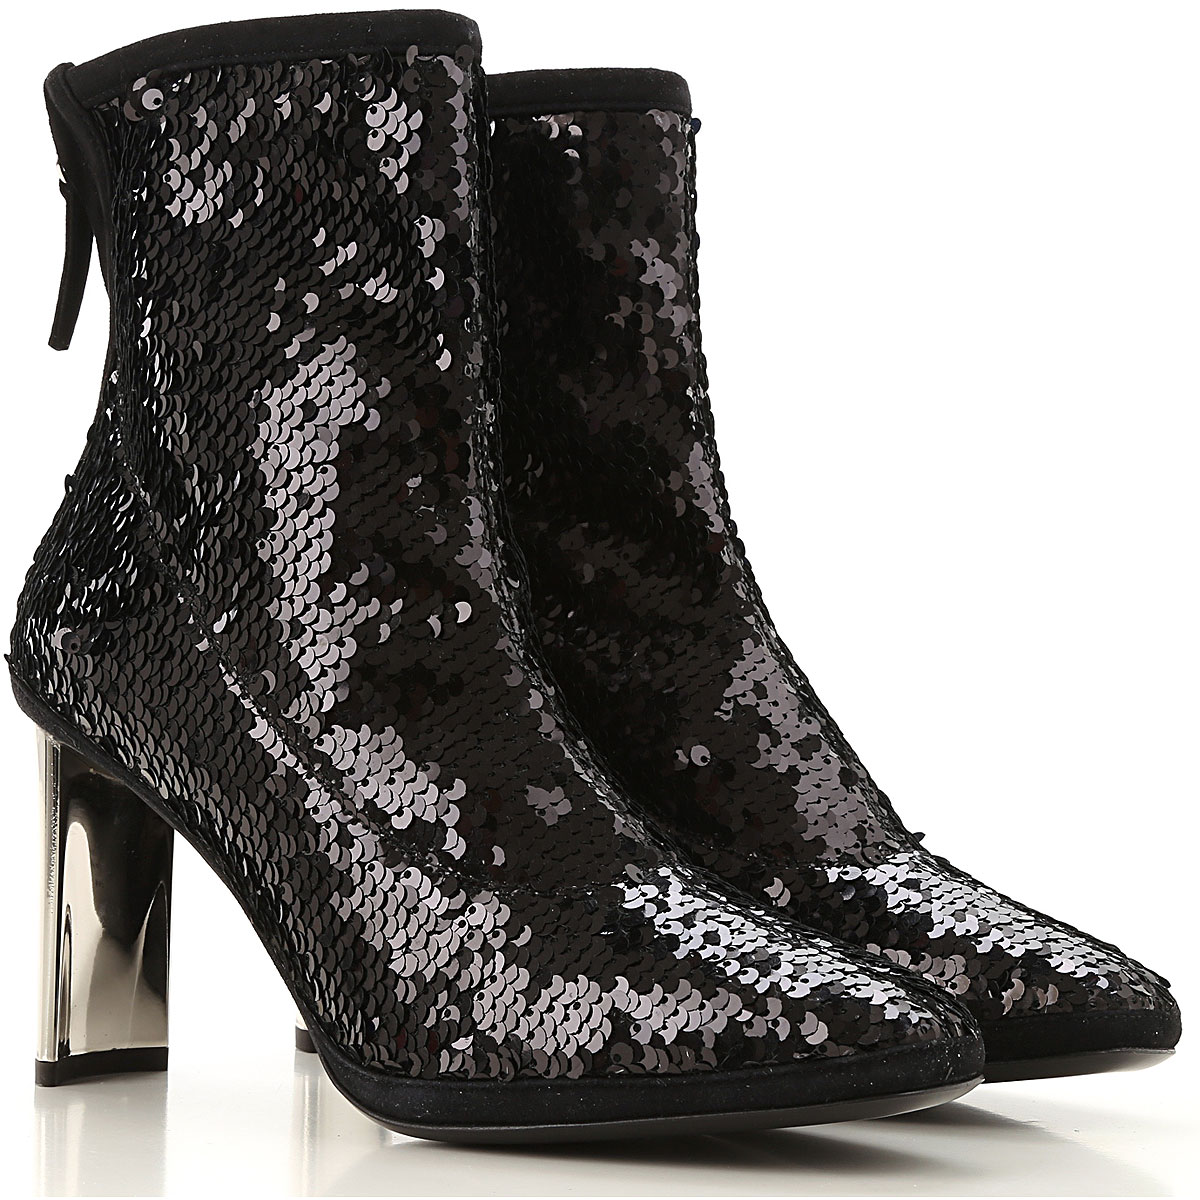 Giuseppe Zanotti Design Boots for Women Booties On Sale in Outlet USA - GOOFASH